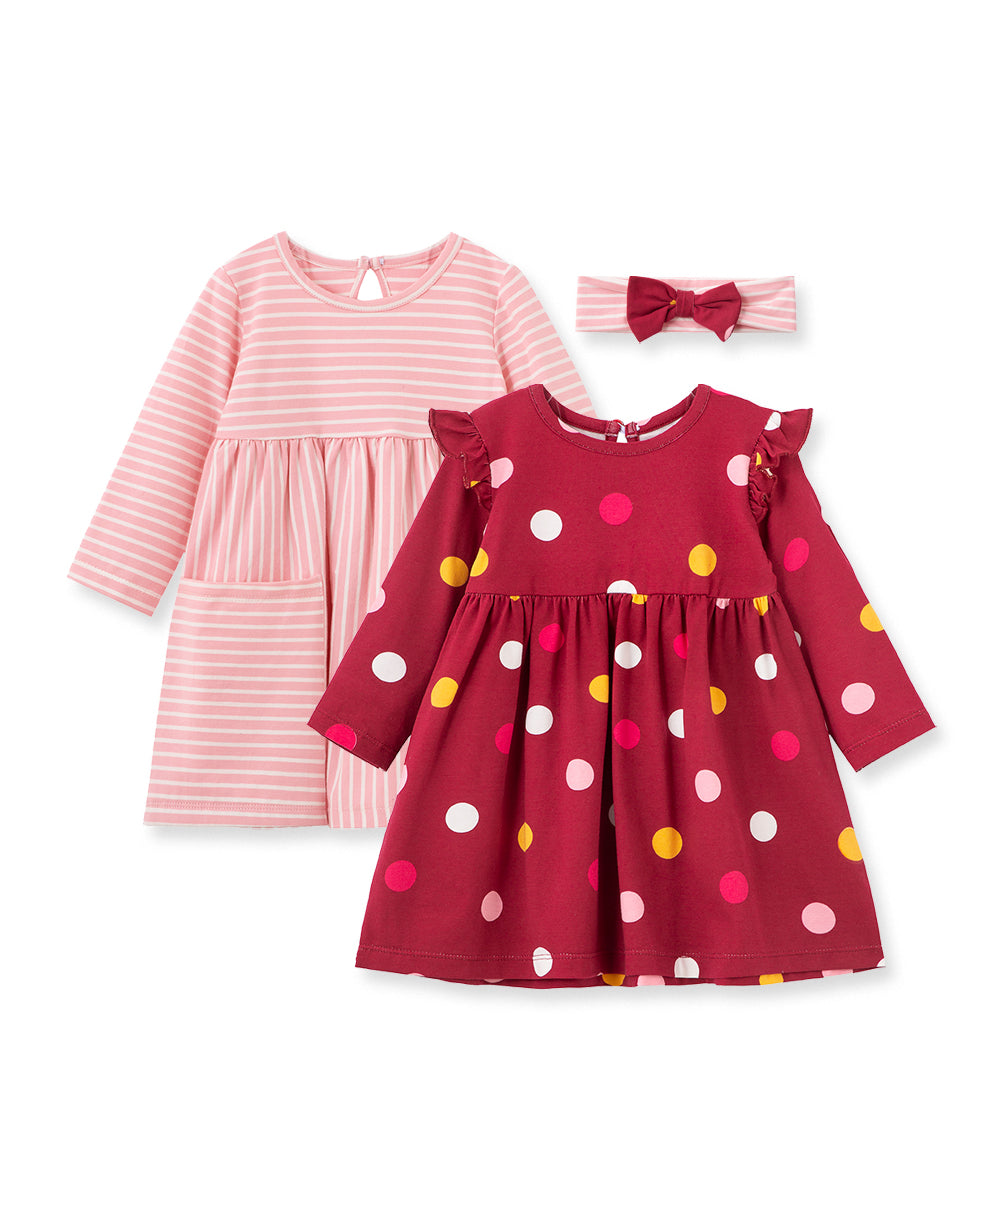 Polka Dot 2-Pack Dress Set